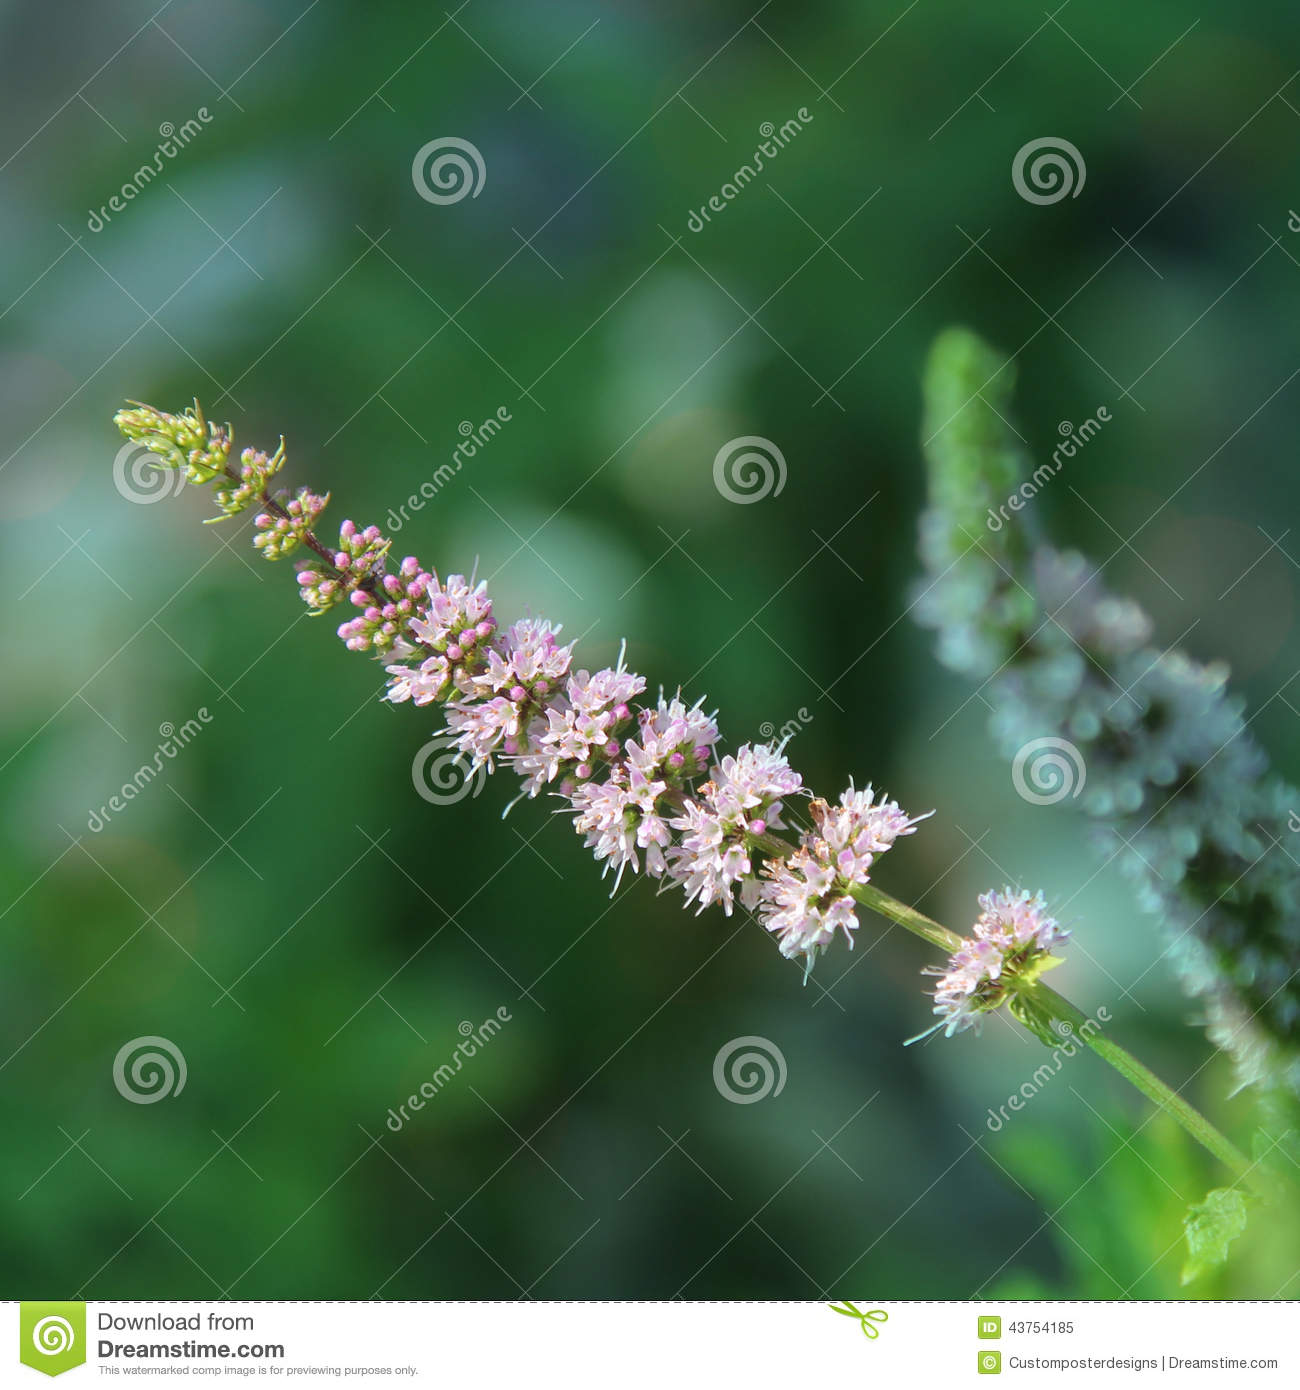 Download The Flower From A Mint Plant. Stock Image - Image of flower, fresh: 43754185